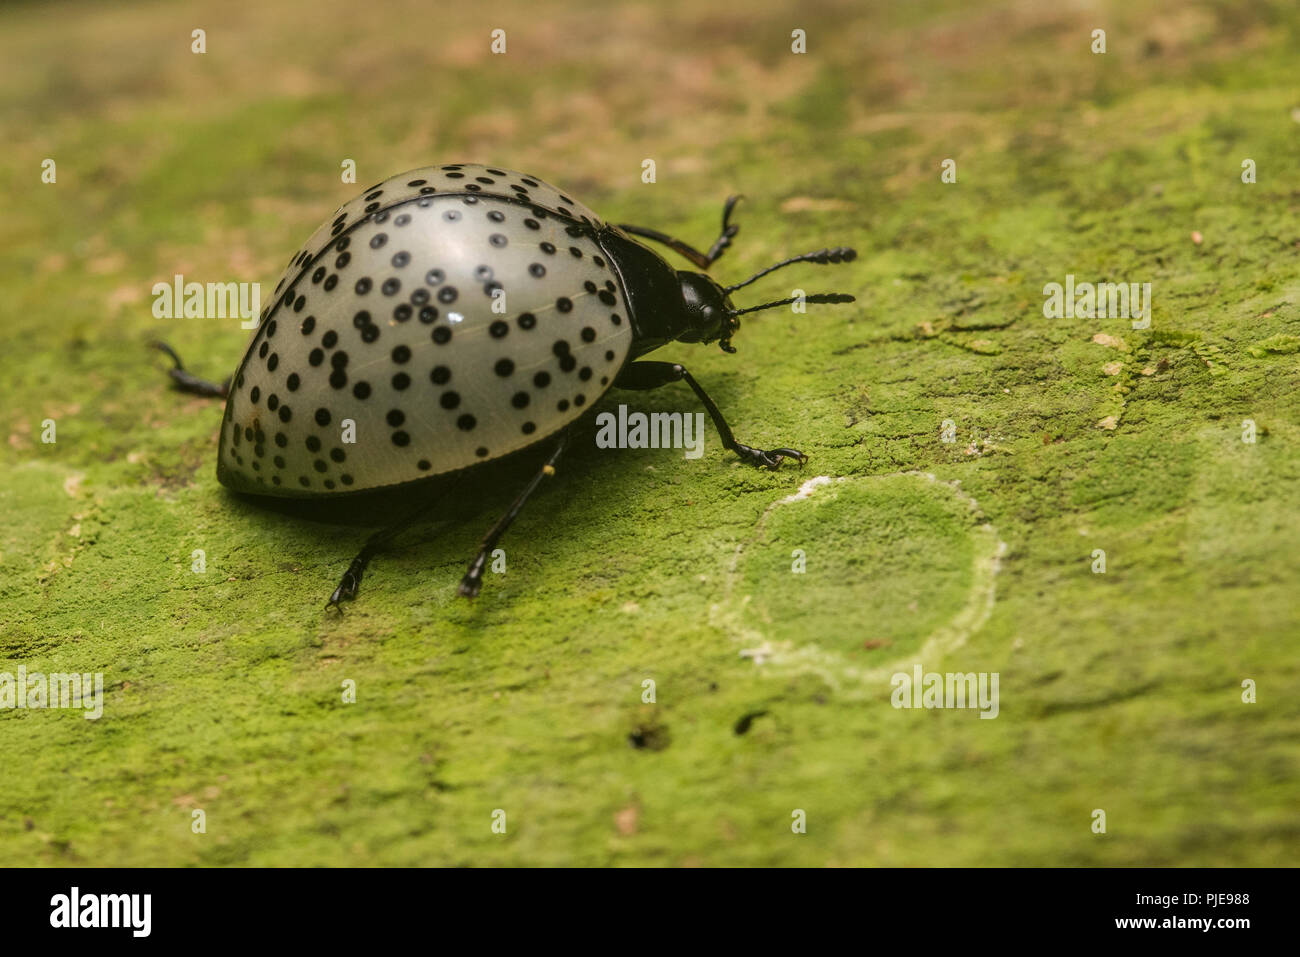 A pleasing fungus beetle from the family Erotylidae, potentially Aegithus burmeisteri crawling along a log in Southern Peru. - Stock Image